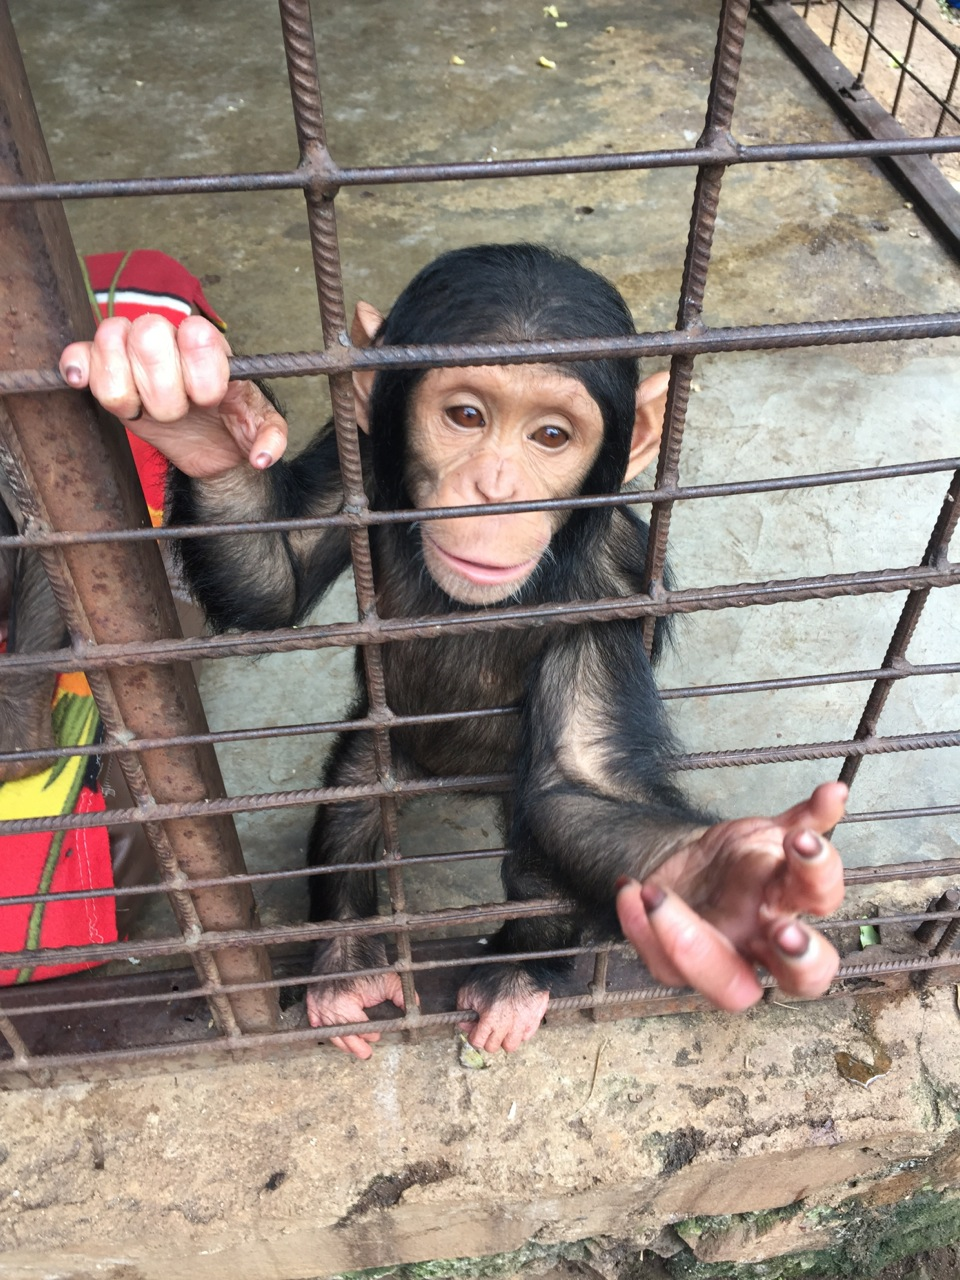 Lwiro Chimpanzee Sanctuary. This little guy confiscated as he was en route to an eastern country as part of the illegal live animal trade.